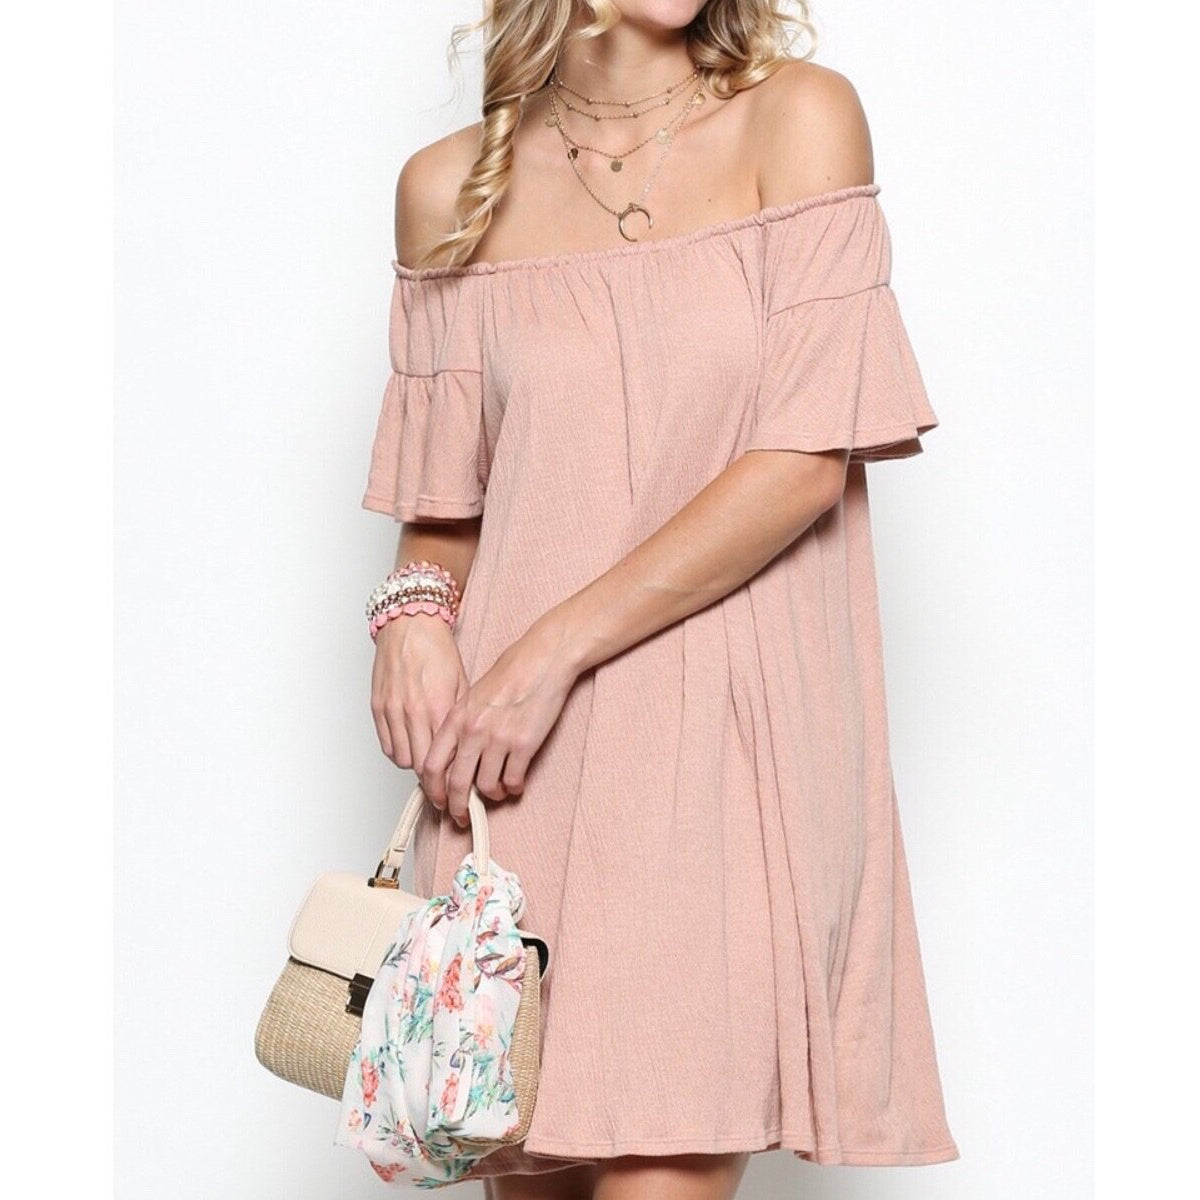 Taylor Off The Shoulder Dress in Pink Sand . Flirty and flouncy its perfect for a spring or summertime dress or coverup